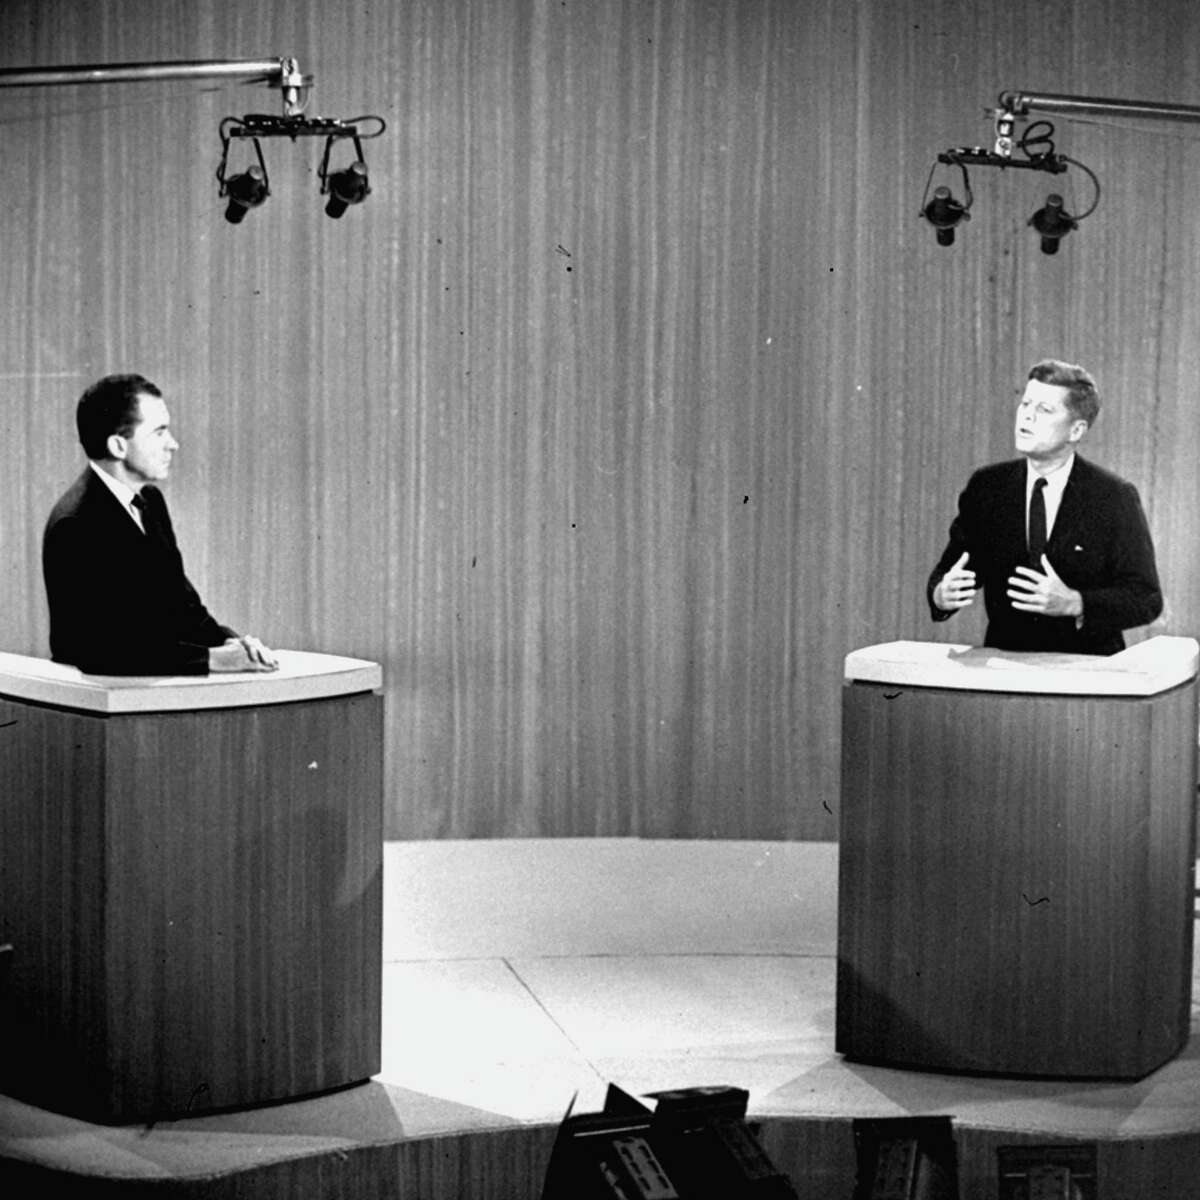 The Kennedy-Nixon debates of 1960 changed American politics. Televised face-offs between candidates are now a fixture of presidential politics, so why should politicians running for statewide office in Texas get away with dodging debates?